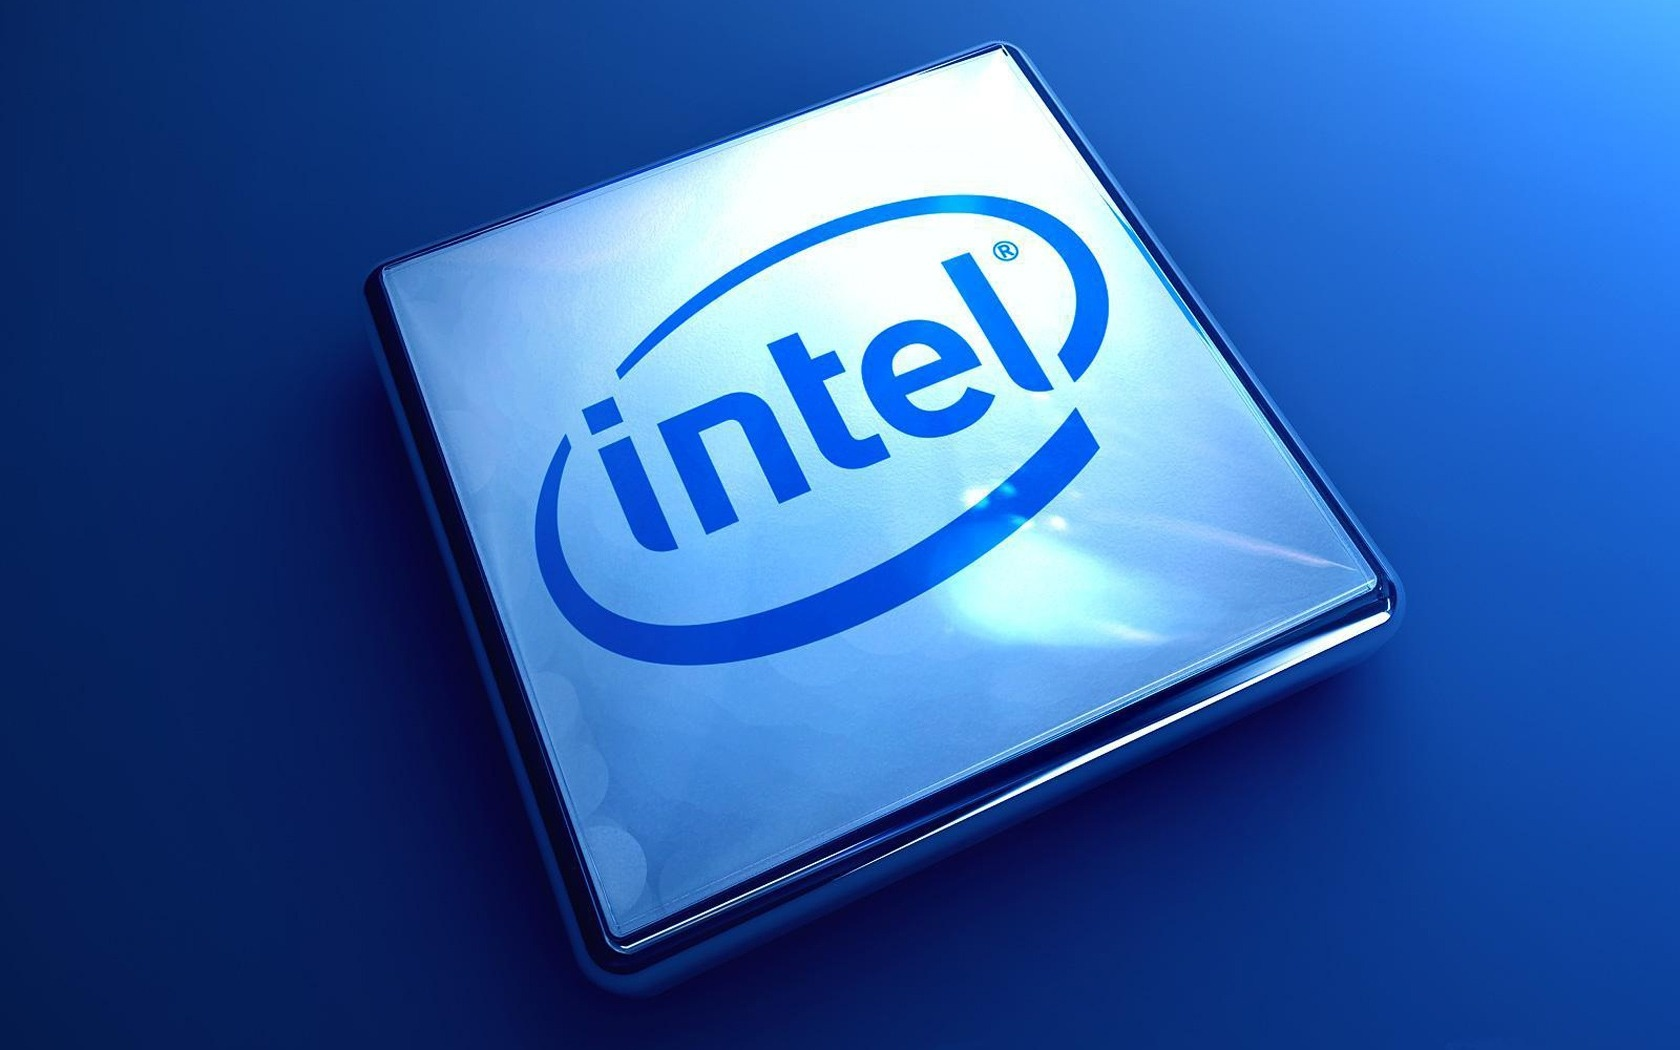 Intel joins Apple, Google with antitrust approval for Nortel patent auction